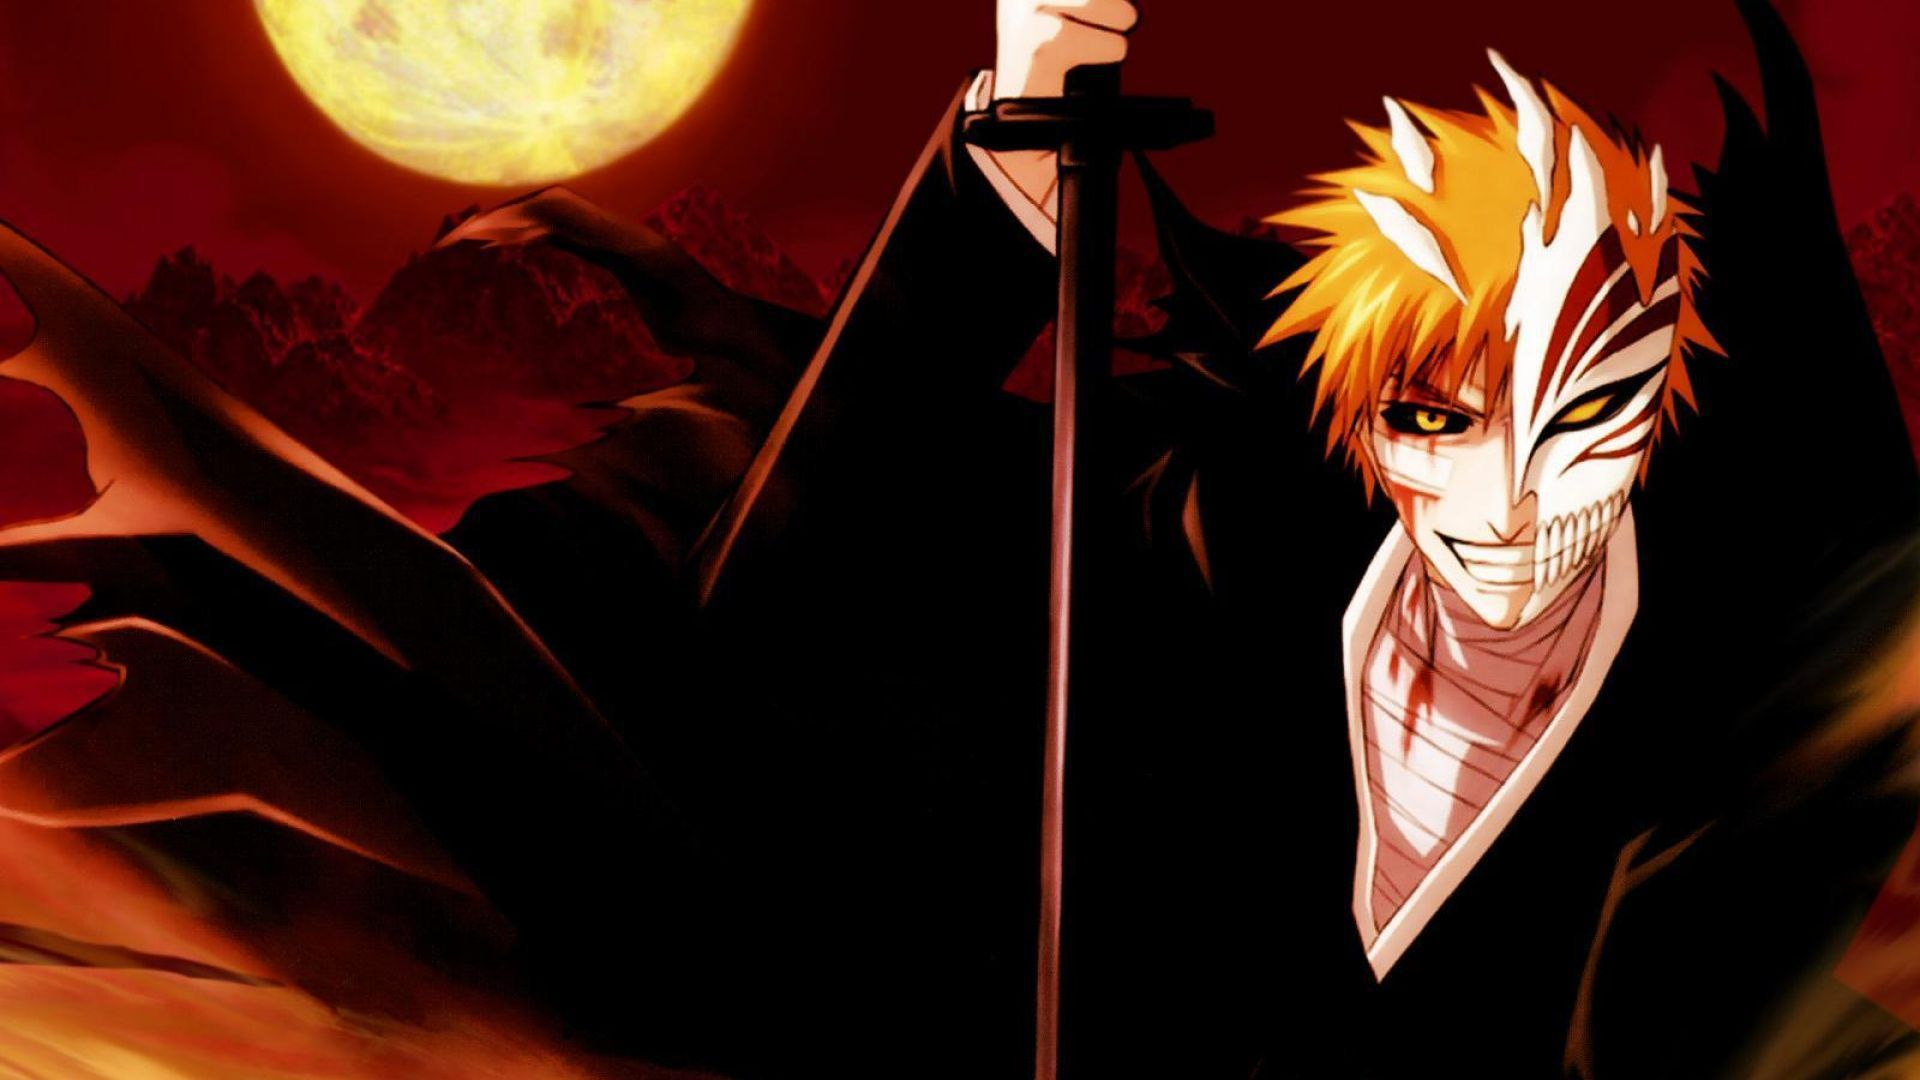 Bleach Wallpapers 1920x1080 - Wallpaper Cave